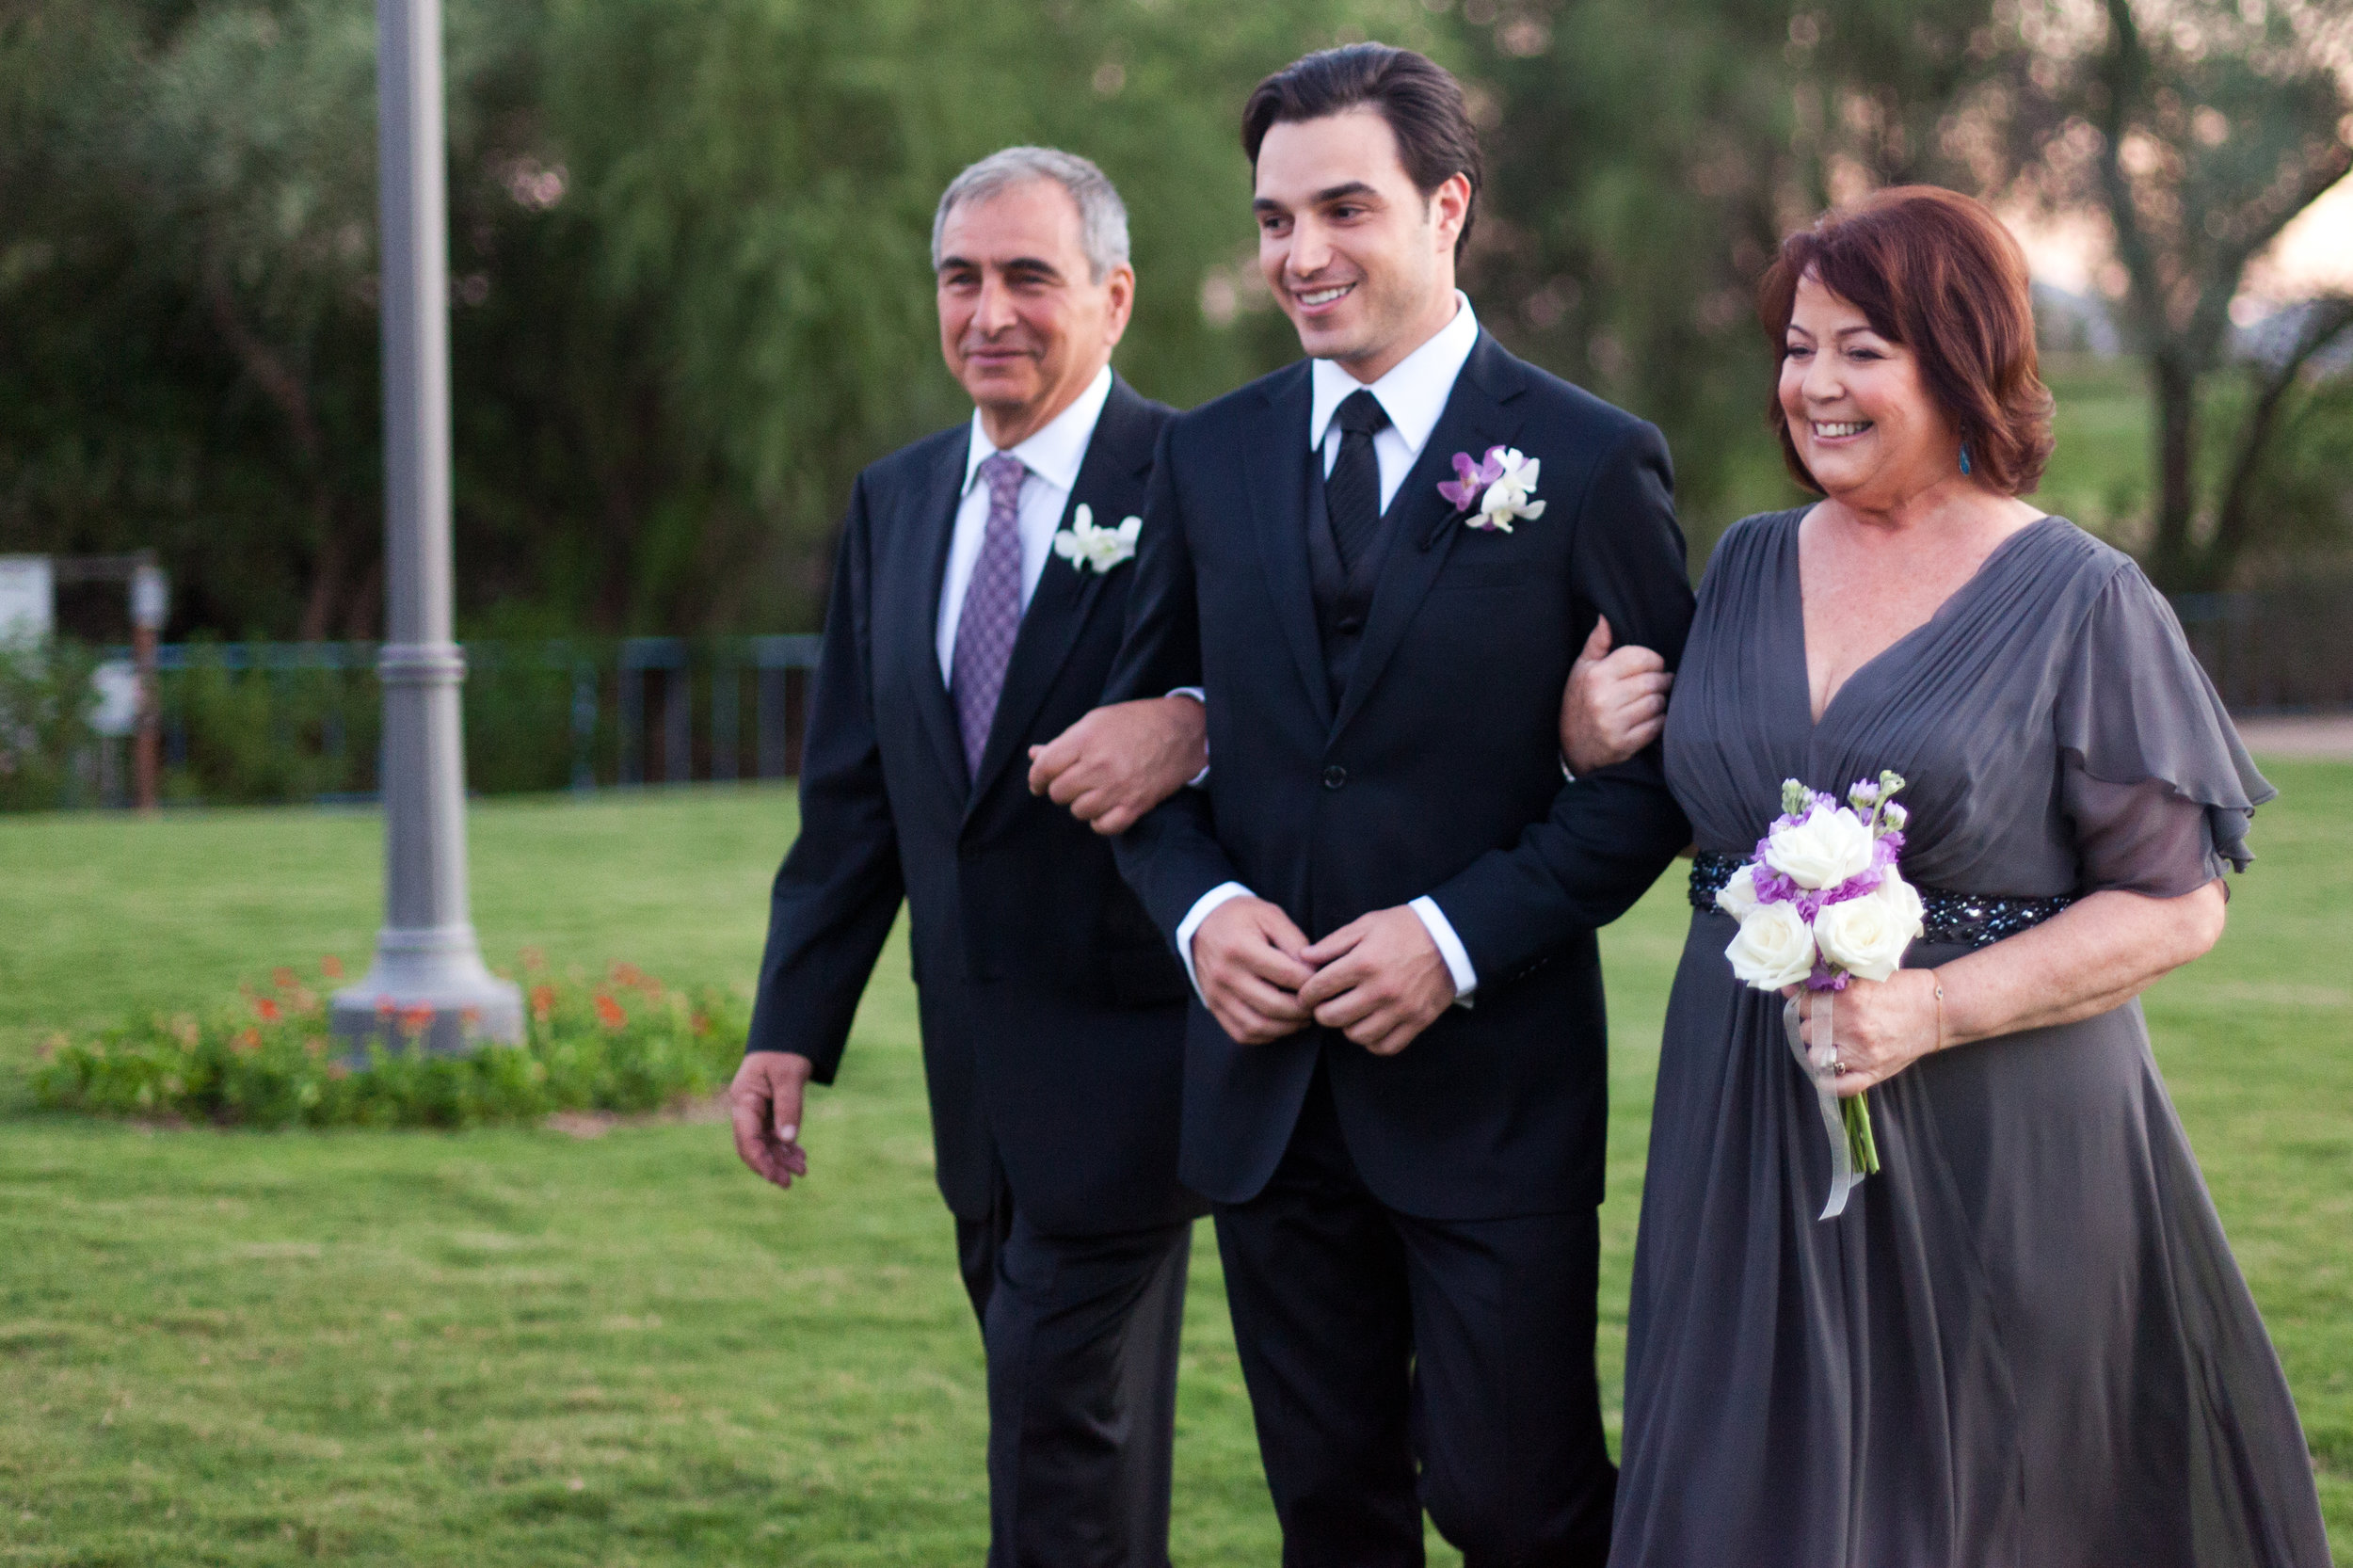 14 groom with parents groom walking down aisle with his parents outdoor ceremony Sergio Photography Life Design Events.JPG